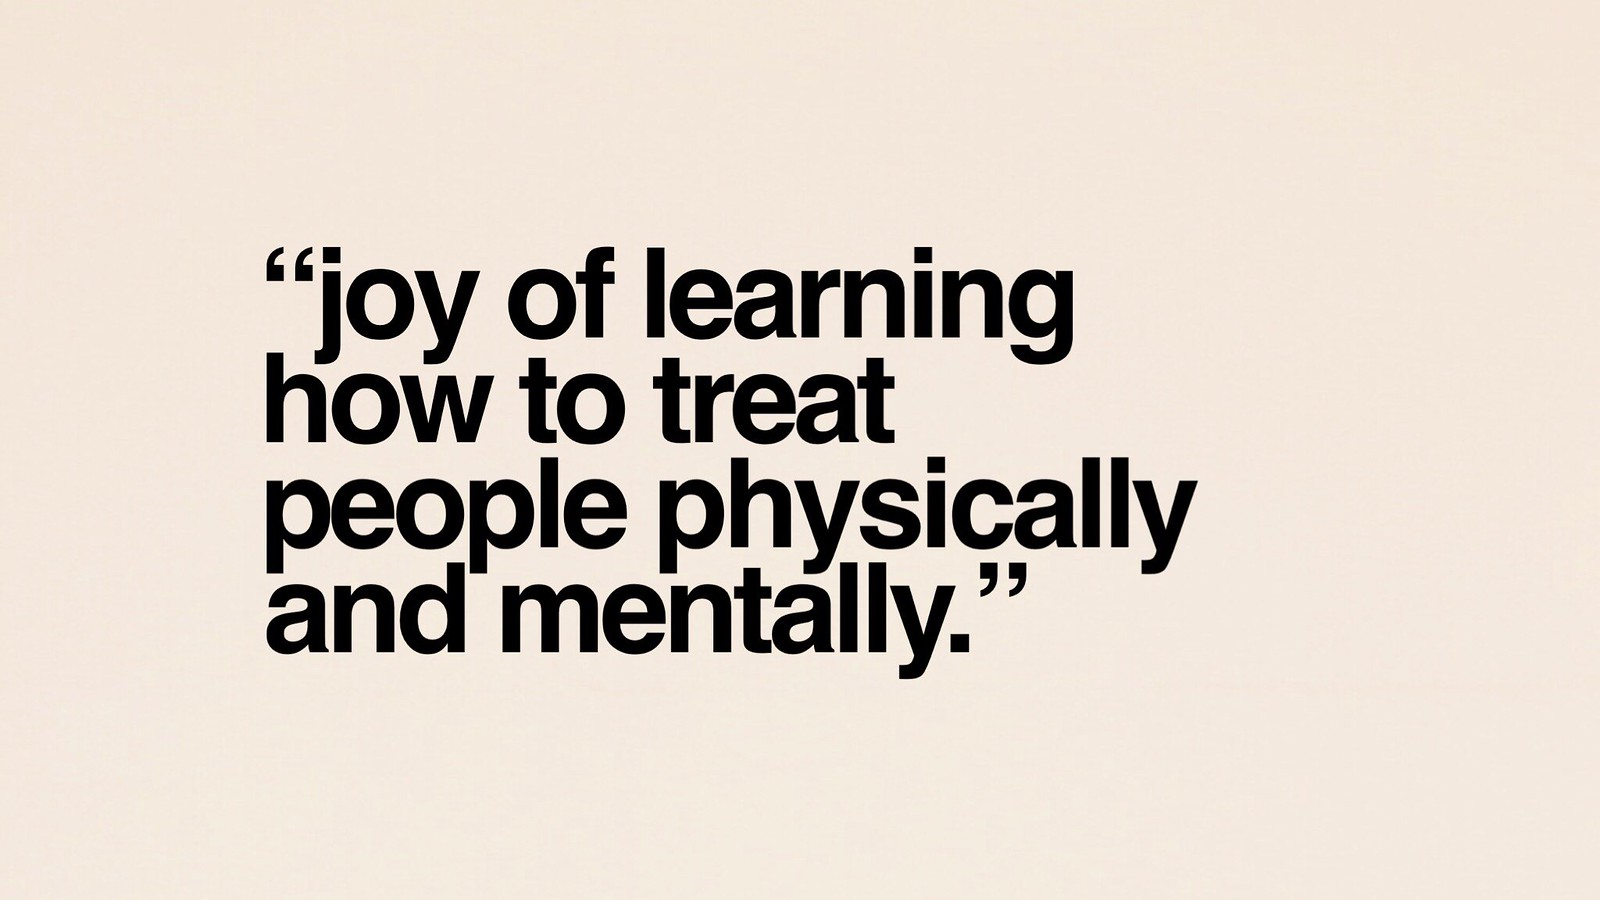 Joy of learning how to treat people physically and mentally.